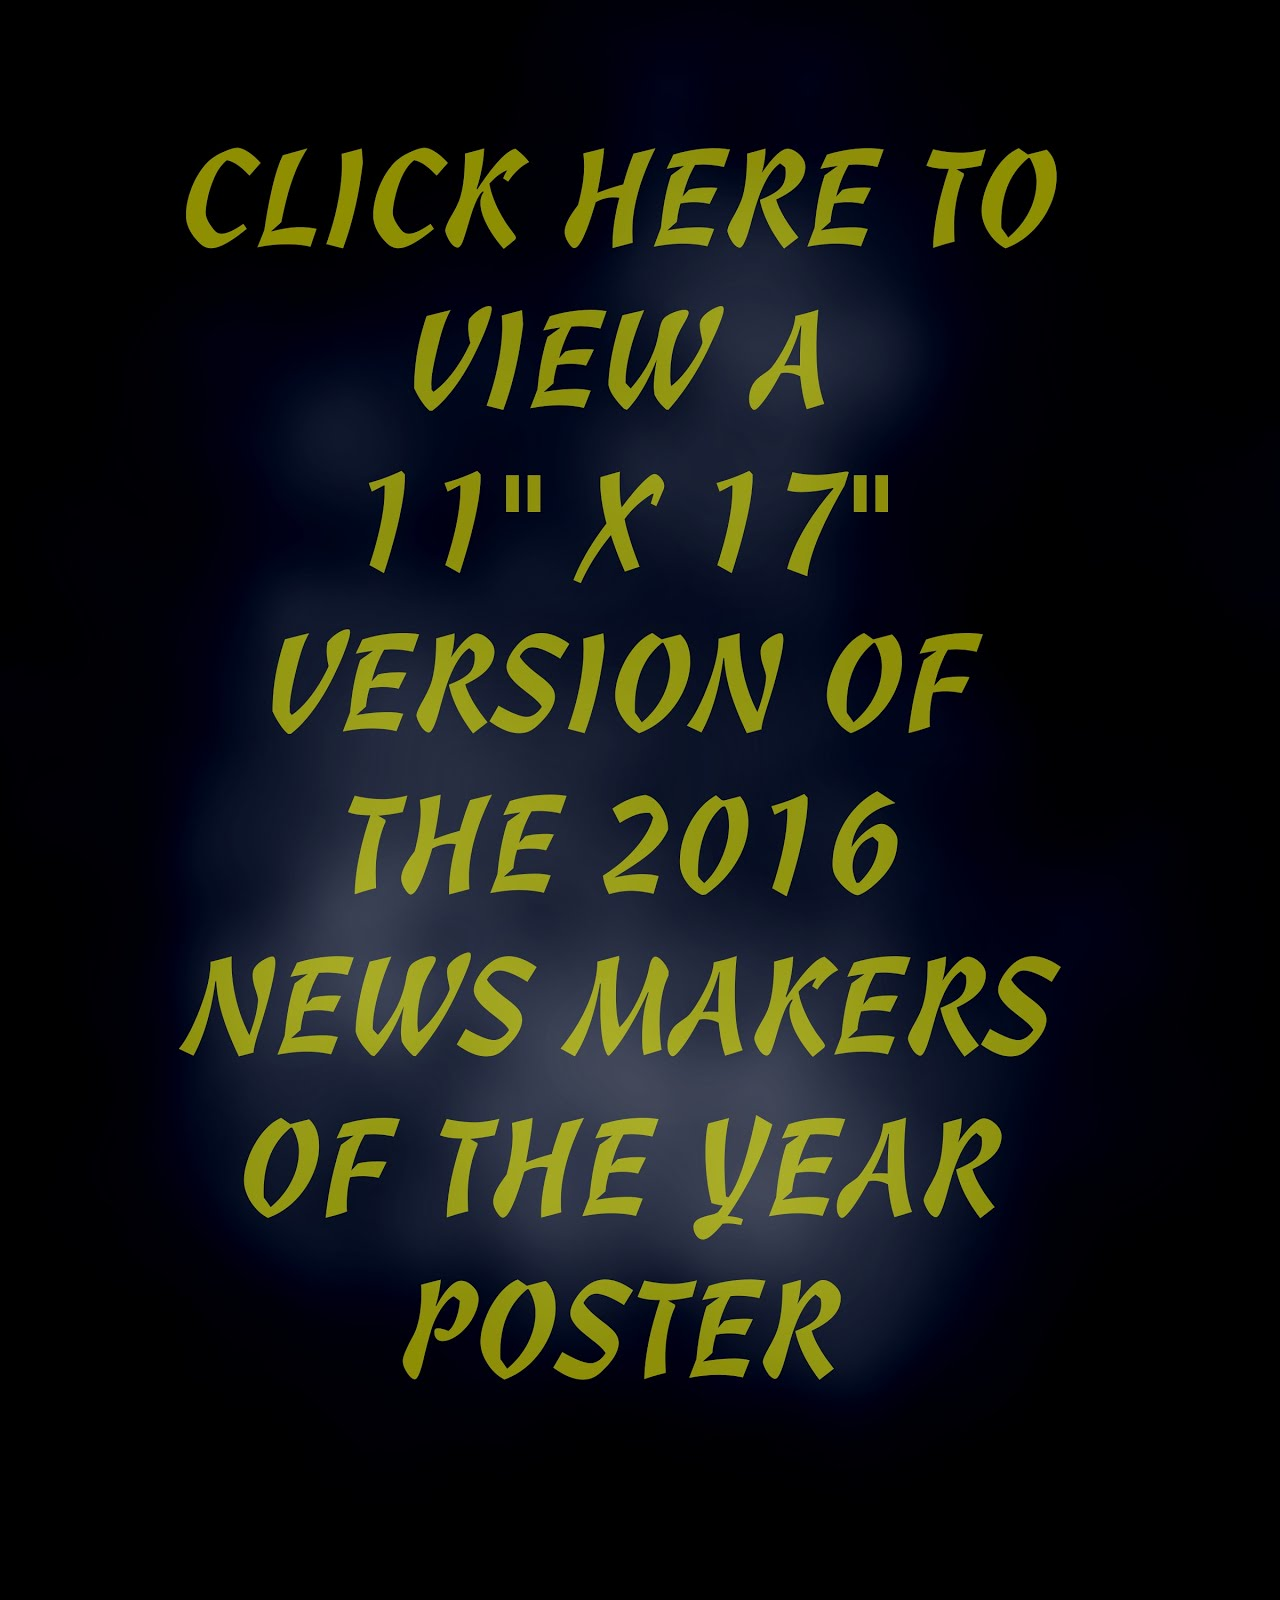 2016 NEWS MAKERS POSTER